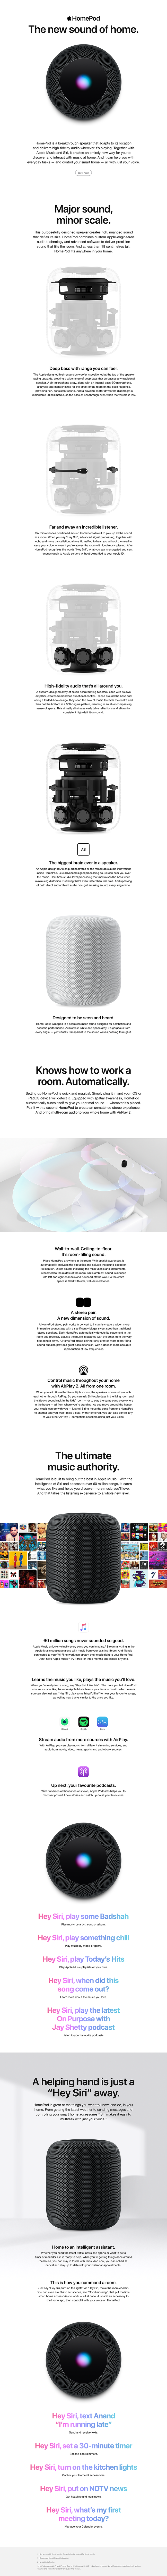 homepods product page copy.PNG